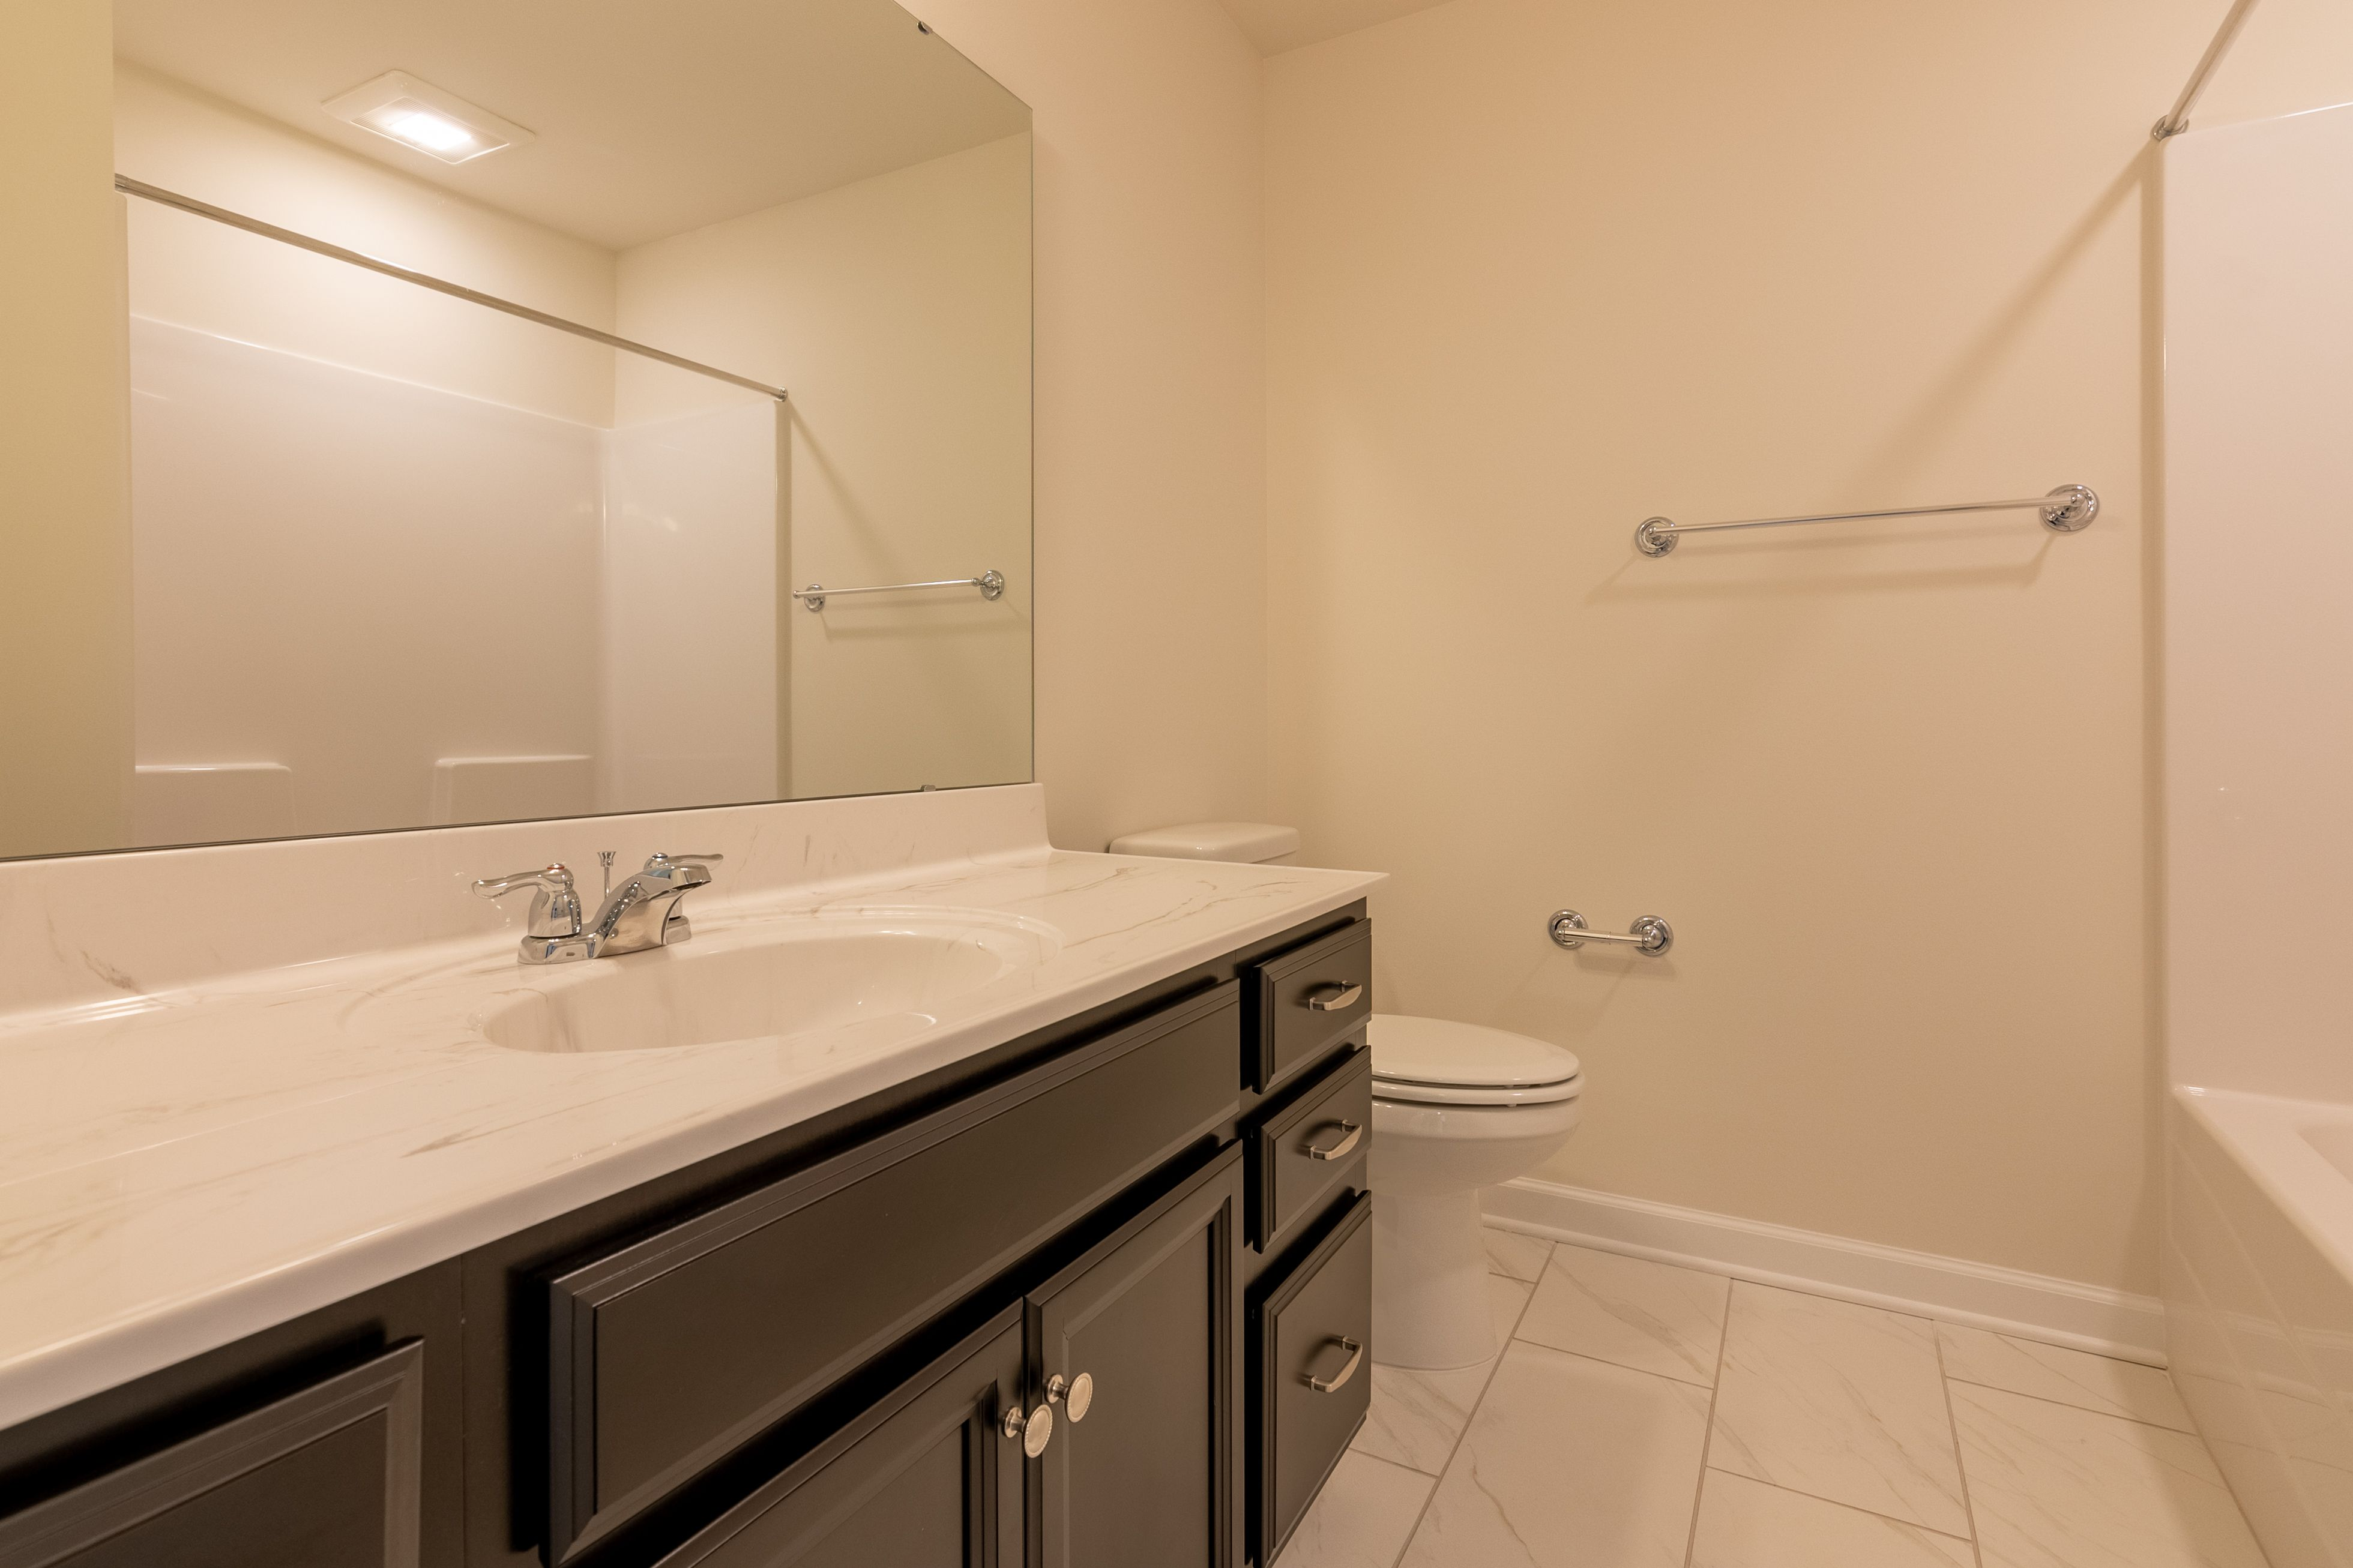 Bathroom featured in The Lexington By Stateson Homes in Roanoke, VA